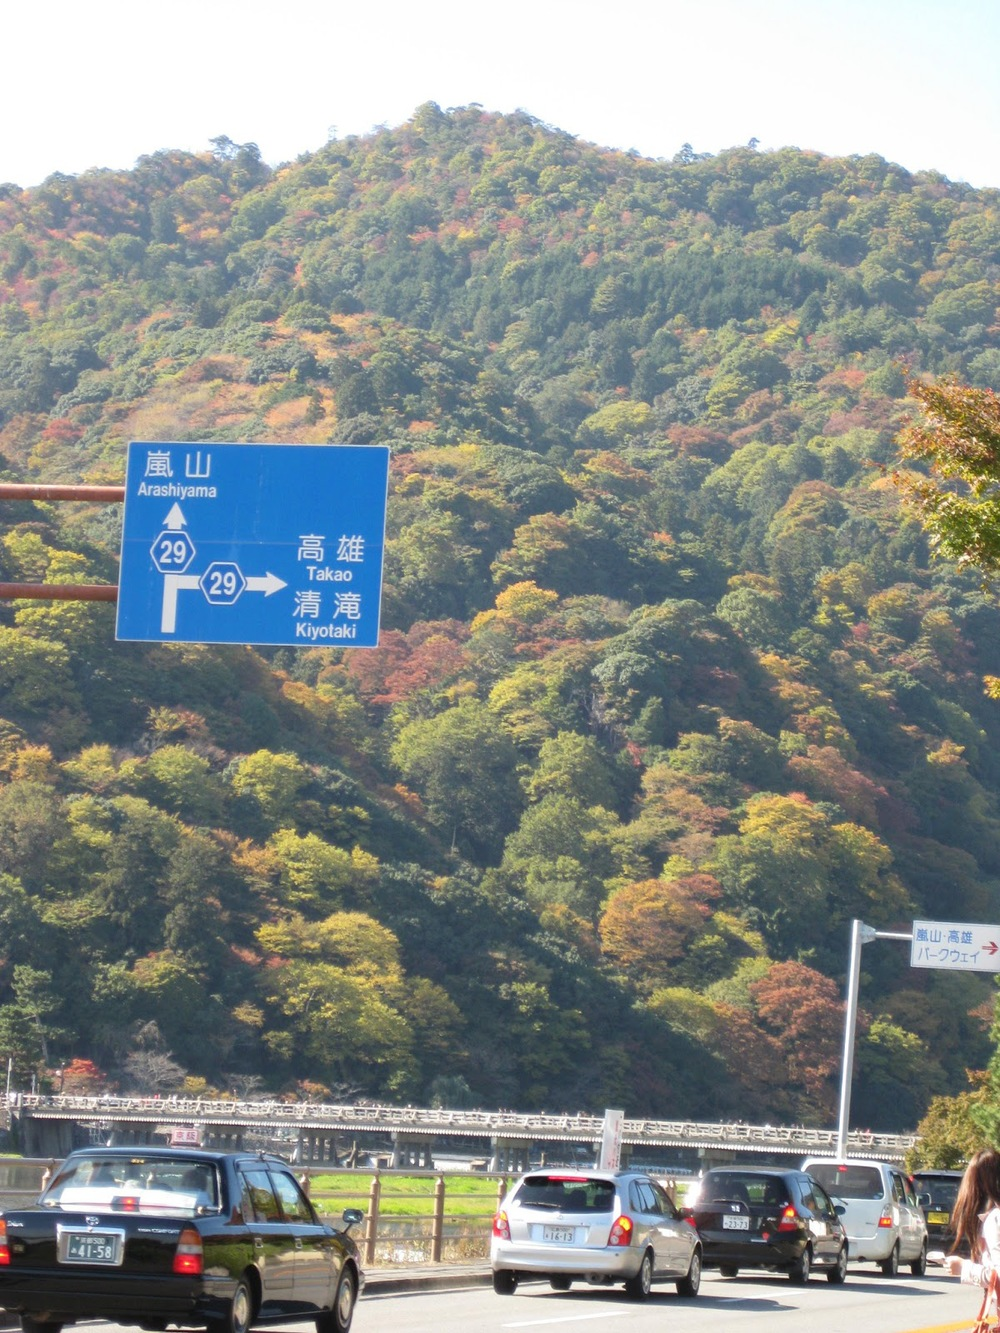 Arashiyama in autumn